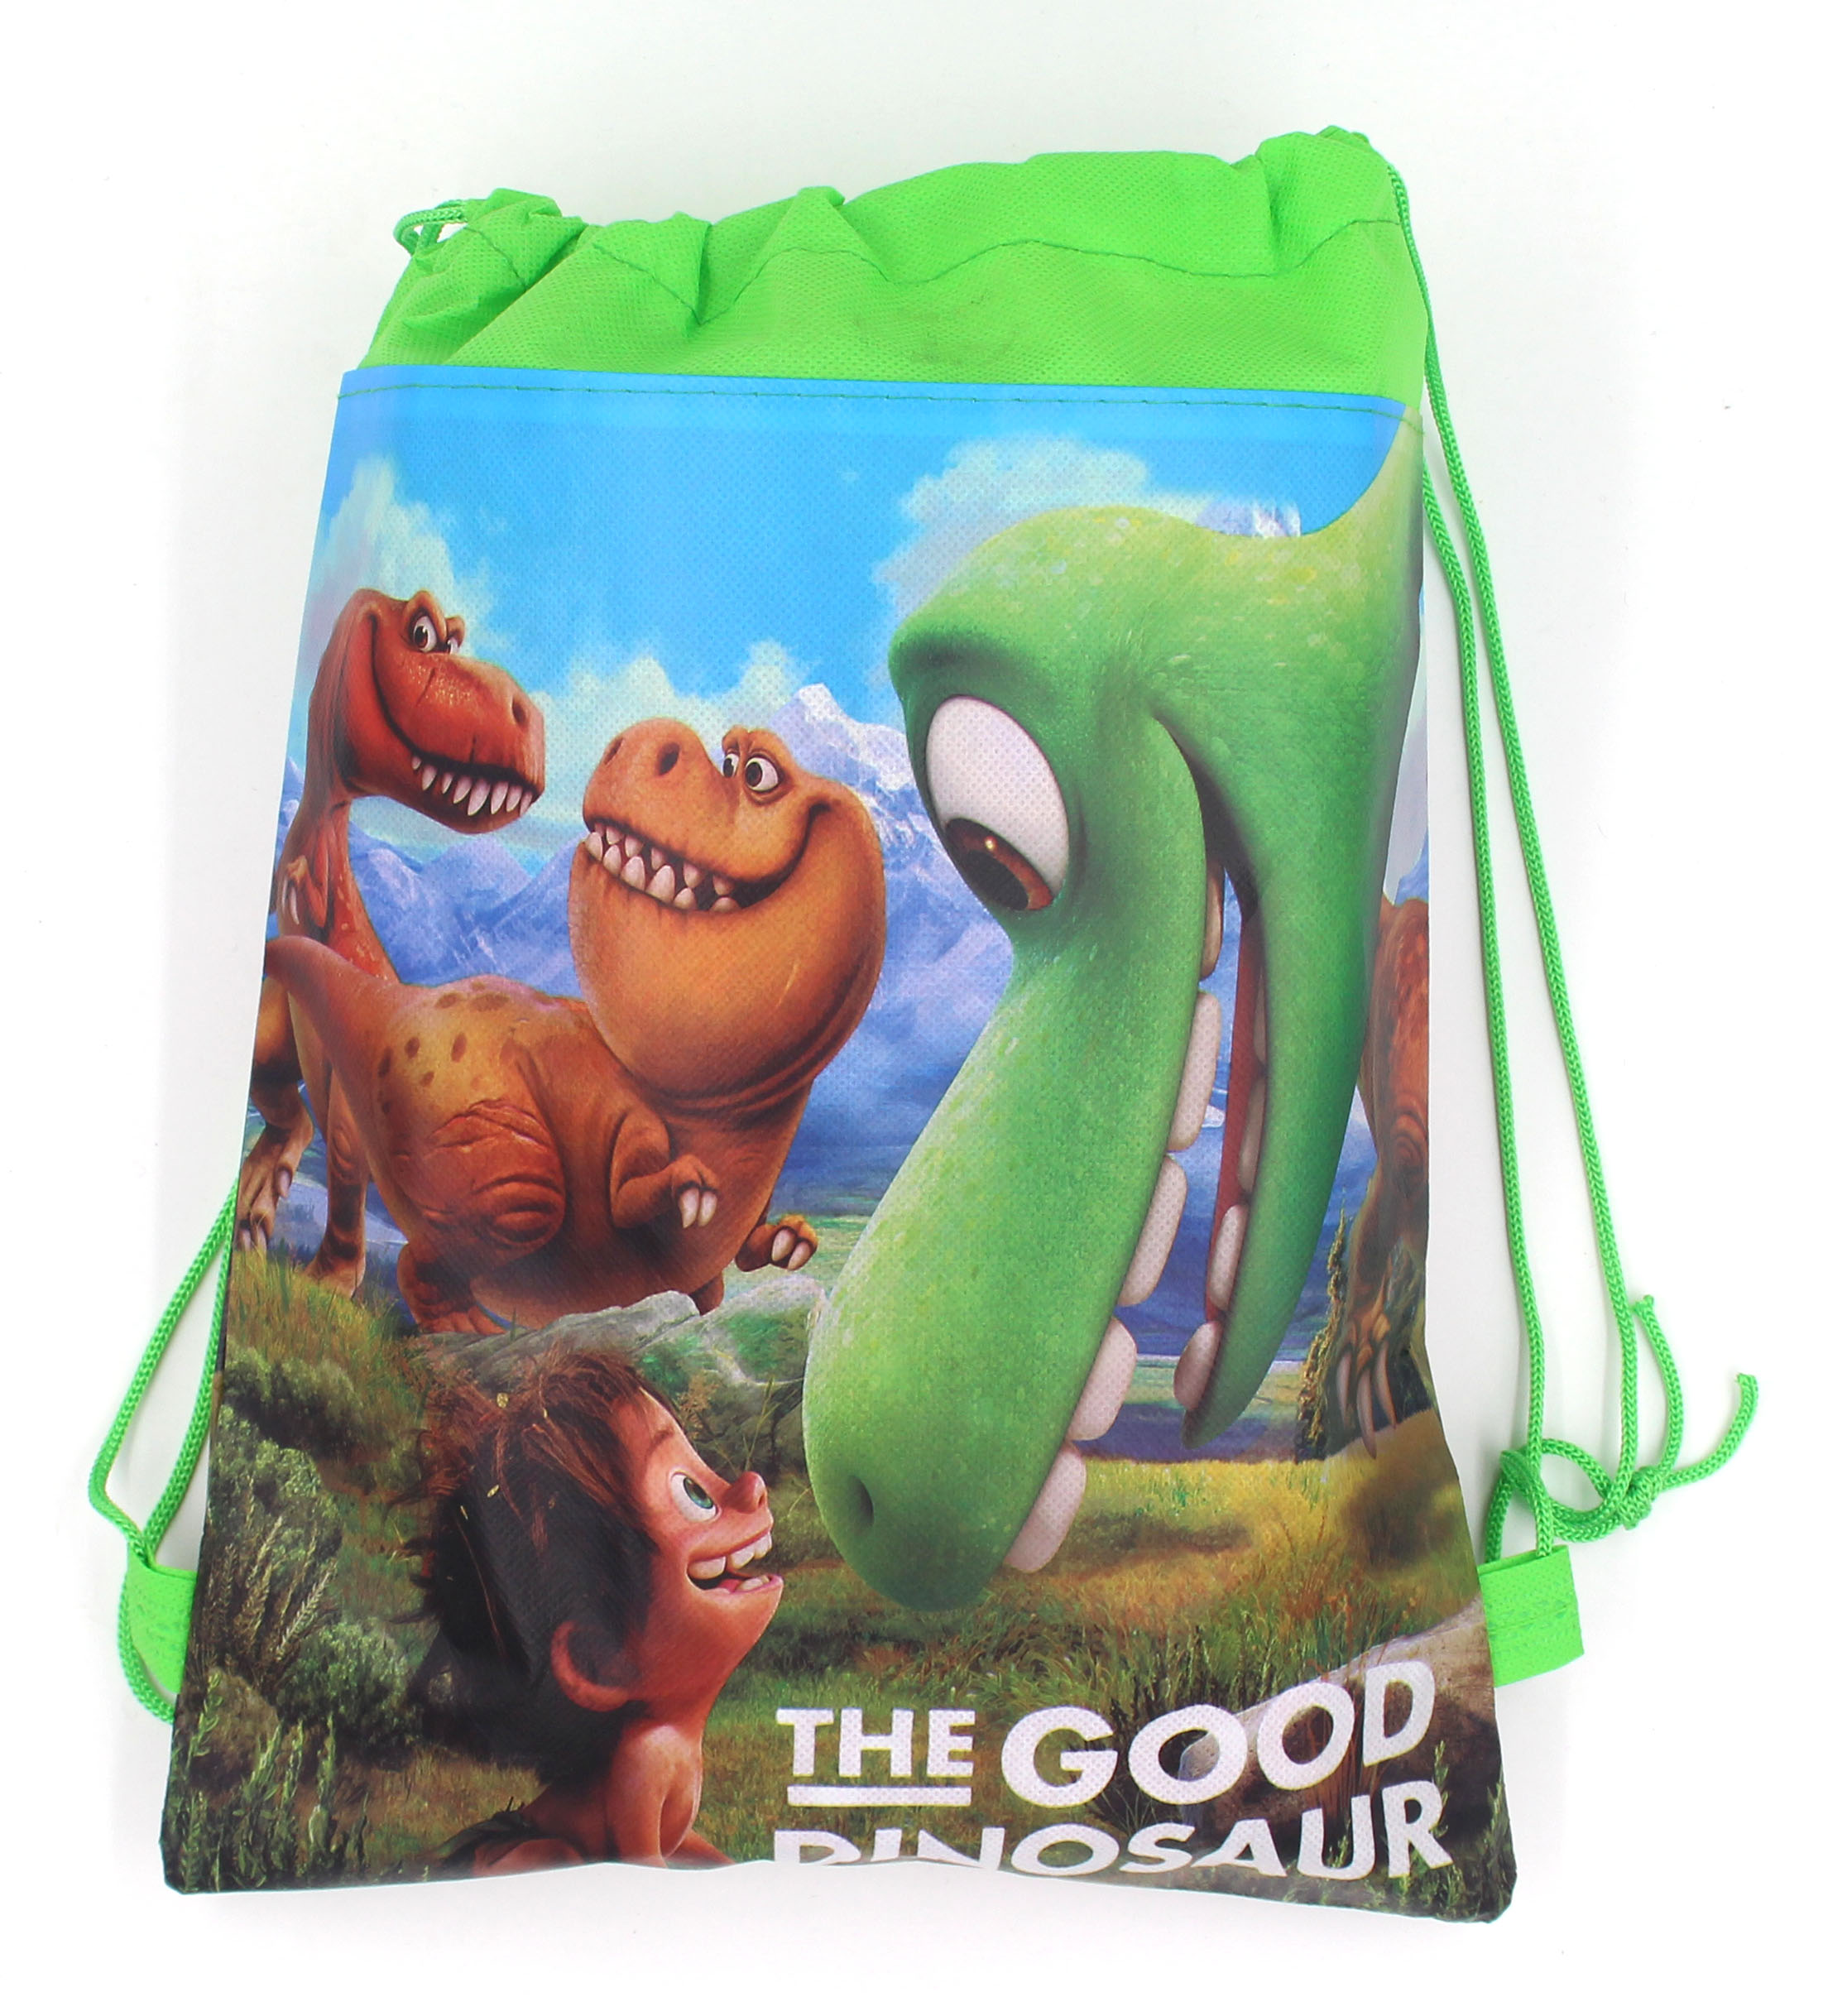 6Pcs New The Good Dinosaur Cartoon Kids Drawstring Printed Backpack Shopping School Traveling Party Bags Birthday Gifts<br><br>Aliexpress